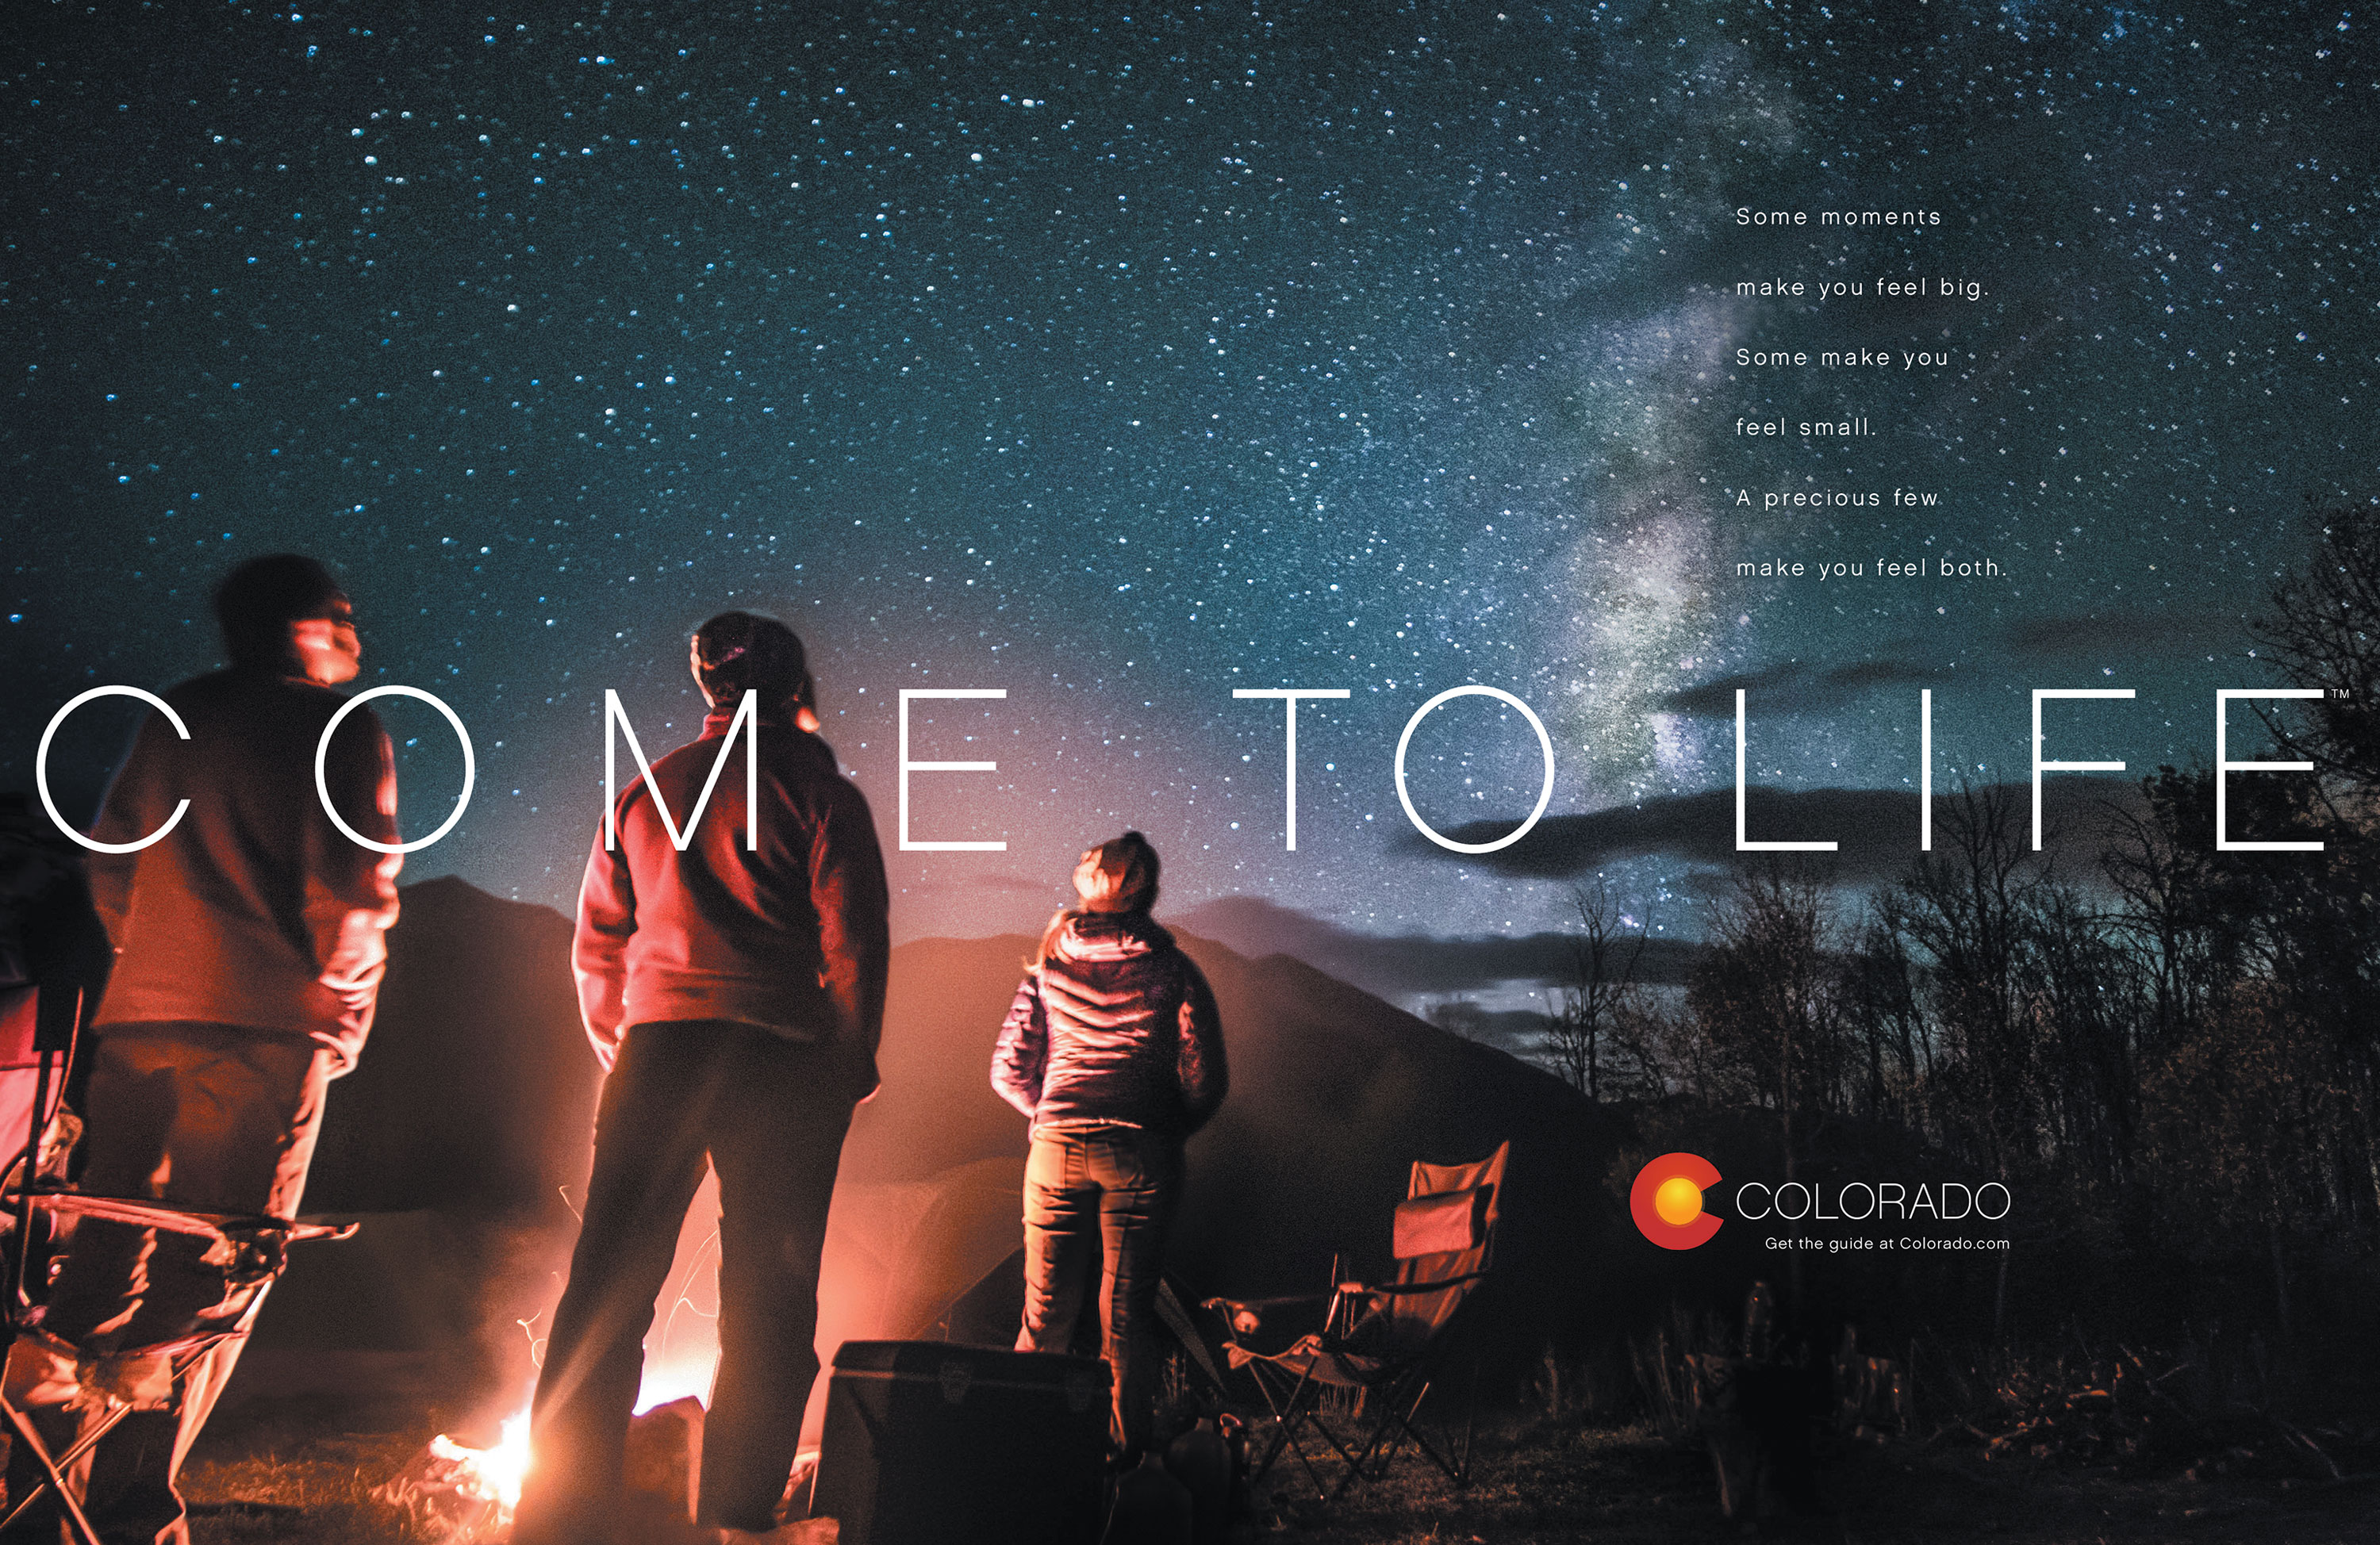 LindseyMills_ColoradoTourism_ComeToLife_Print_NightSky